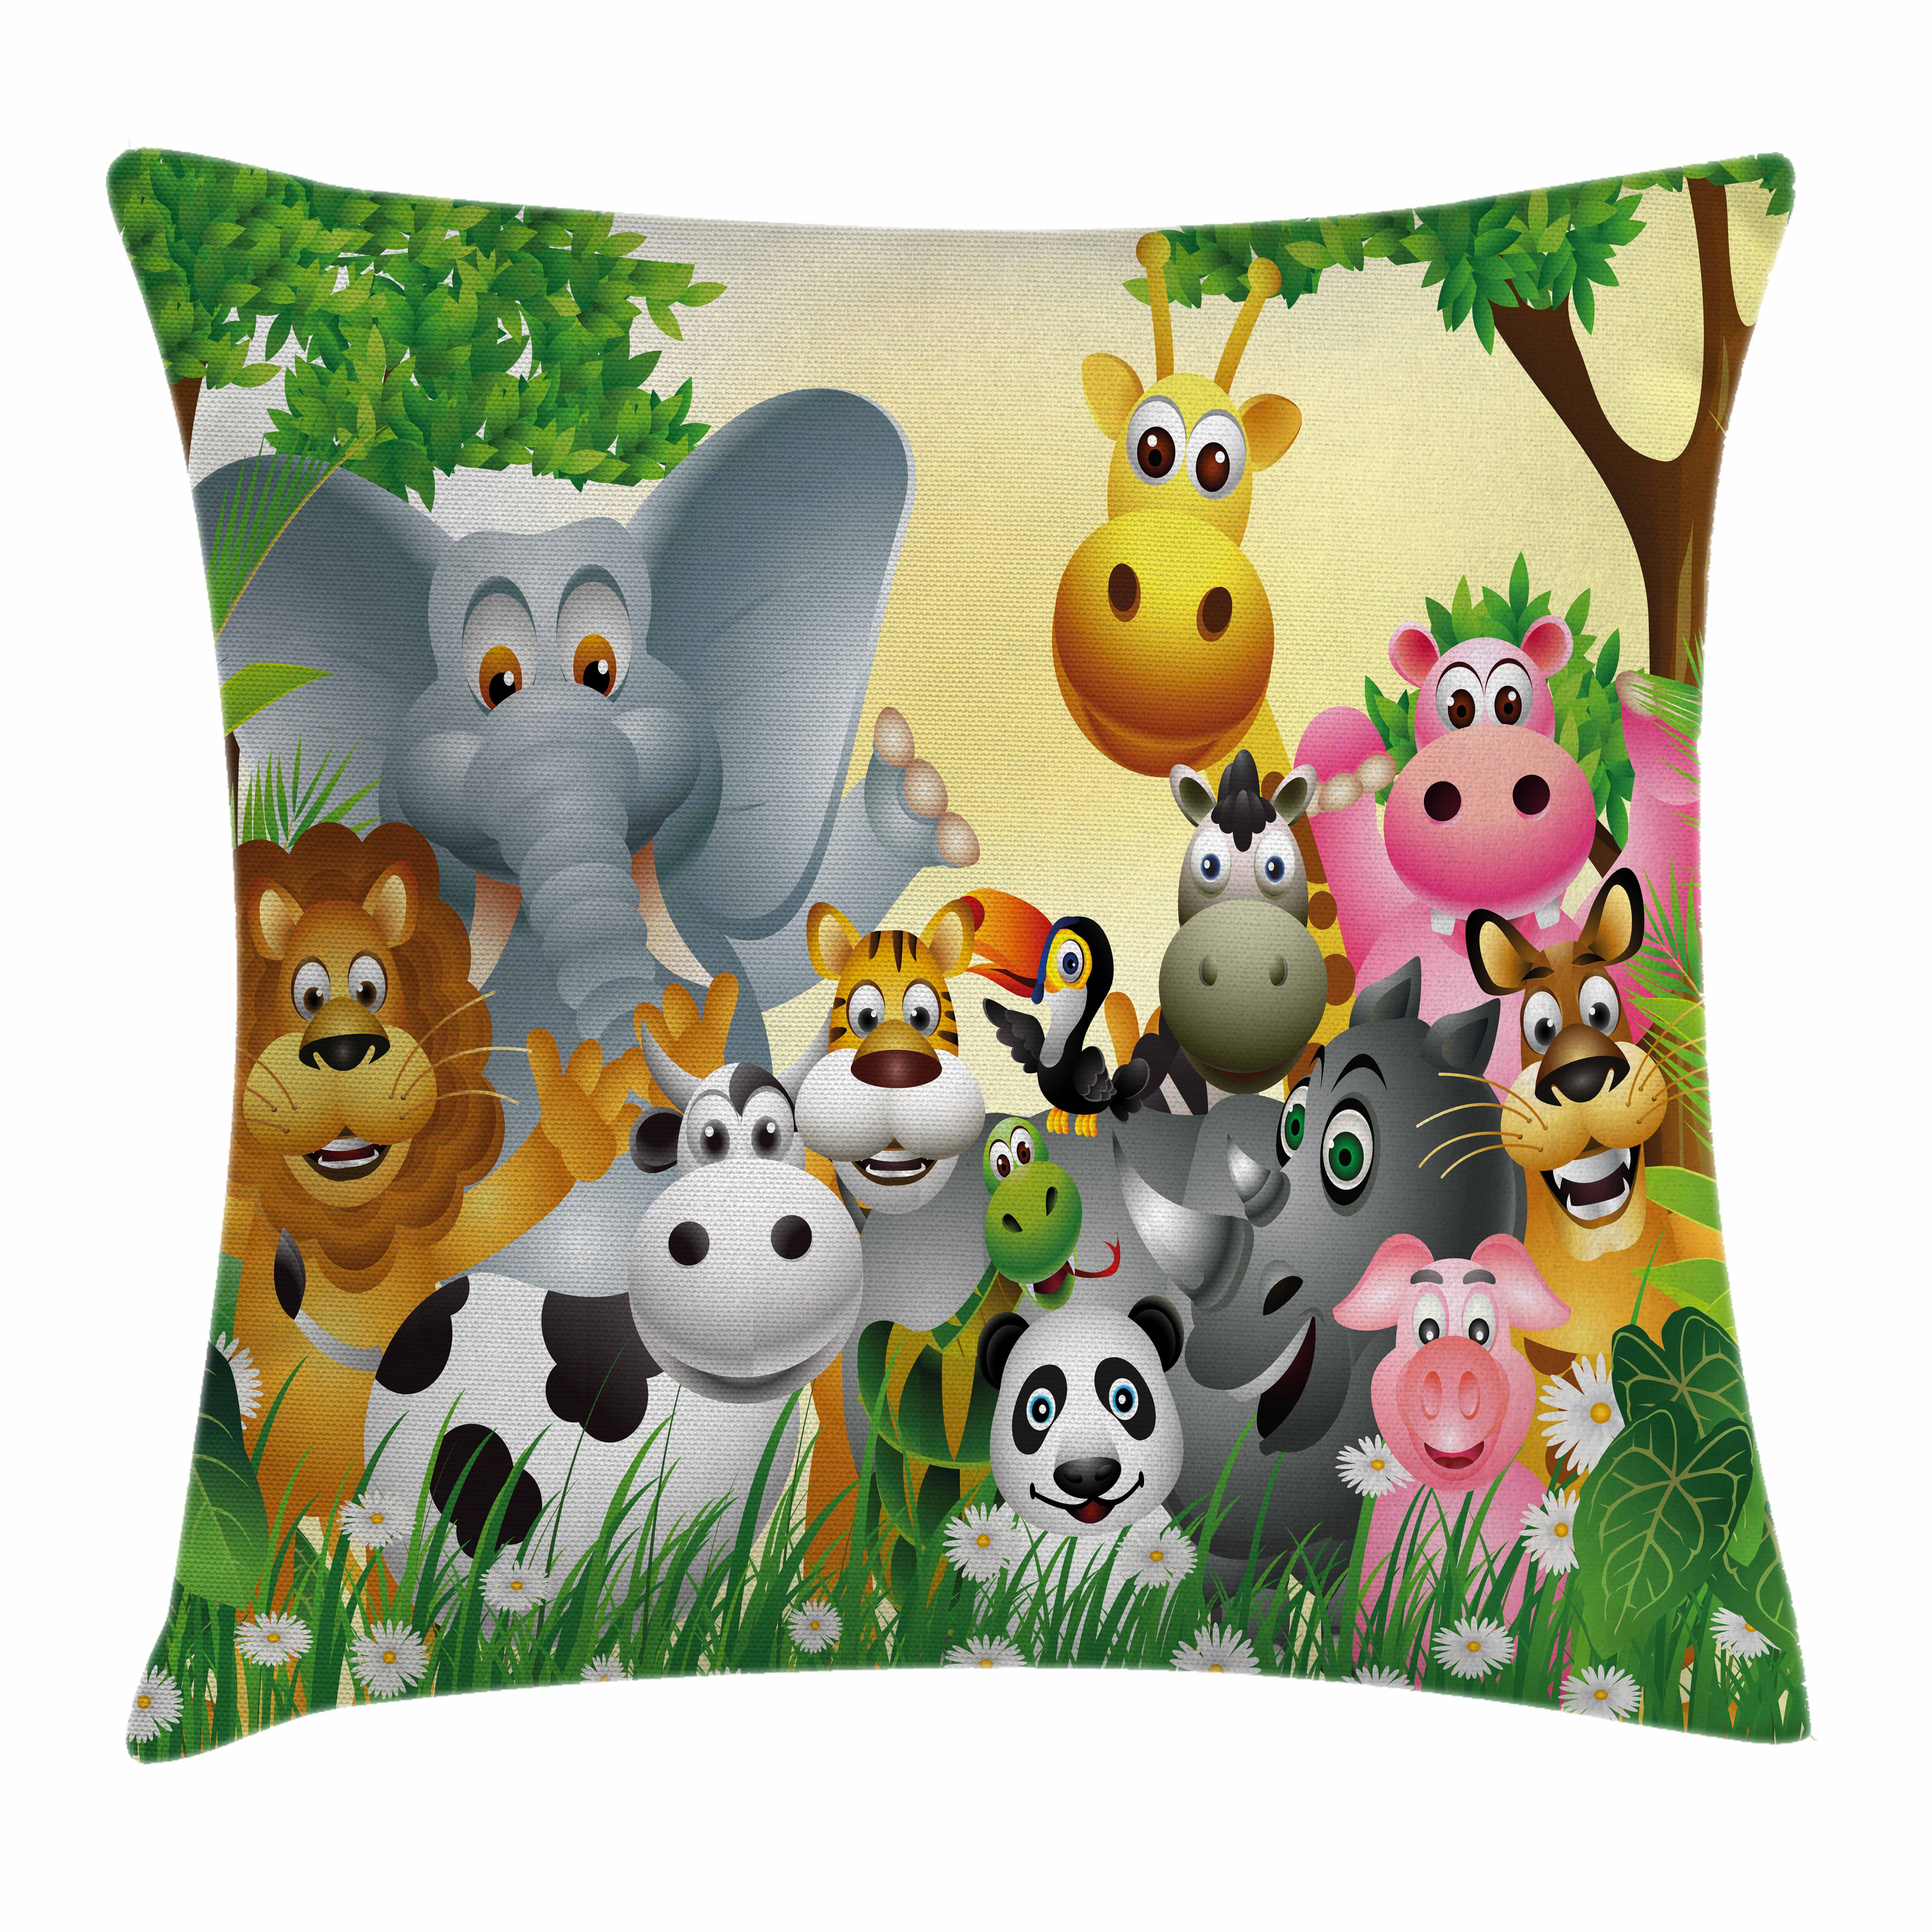 Kids Decor Throw Pillow Cushion Cover, Cute Animals in Jungle Elephant Giraffe Panda Bear Pig Lion Hippo Rhino Cartoon, Decorative Square Accent Pillow Case, 16 X 16 Inches, Multicolor, by Ambesonne